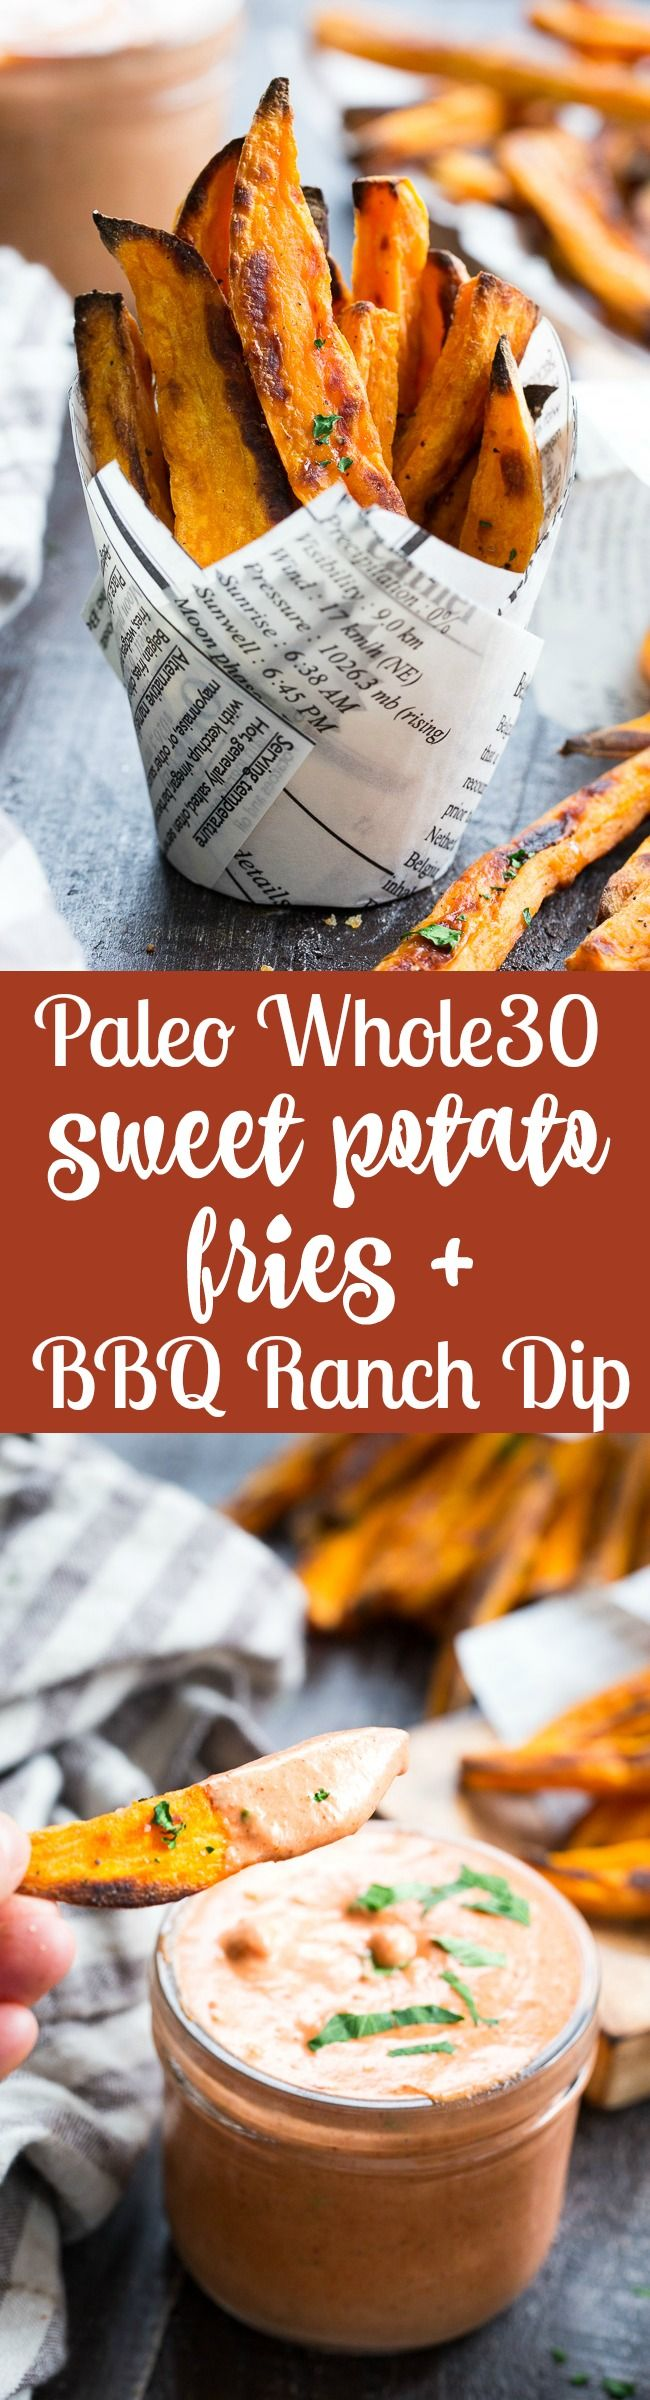 Crispy baked paleo and Whole30 compliant sweet potato fries are not only possible, but easy to make, too!  Served here with an insanely tasty, Whole30 compliant BBQ ranch dip that you'll want to put on everything.  Kid approved, great for a fun snack, side dish, or appetizer any time!